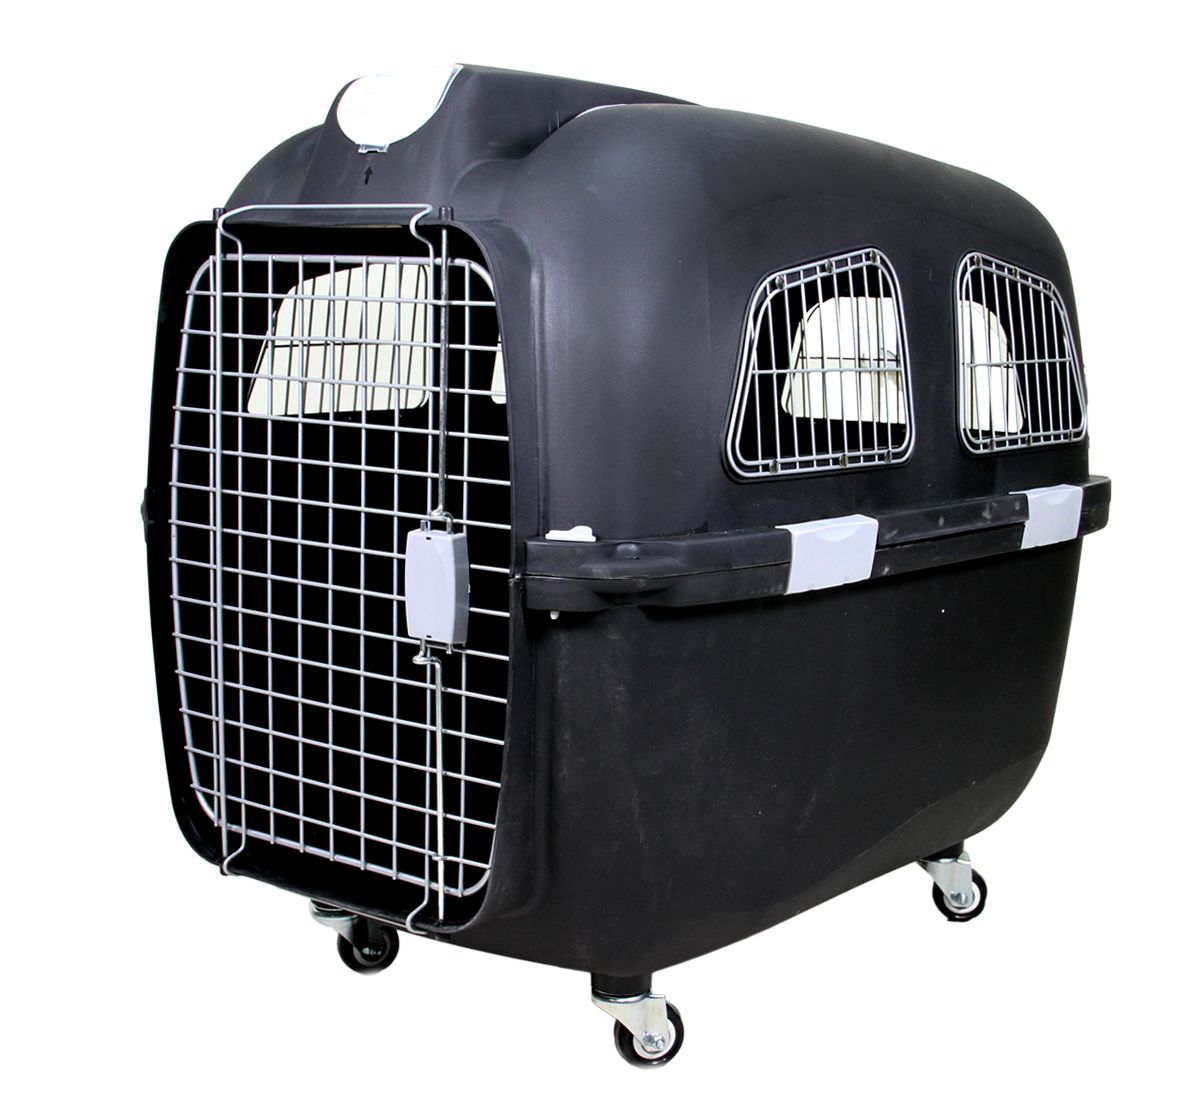 Dog Crate With Revolving Wheel And Extendable Handle